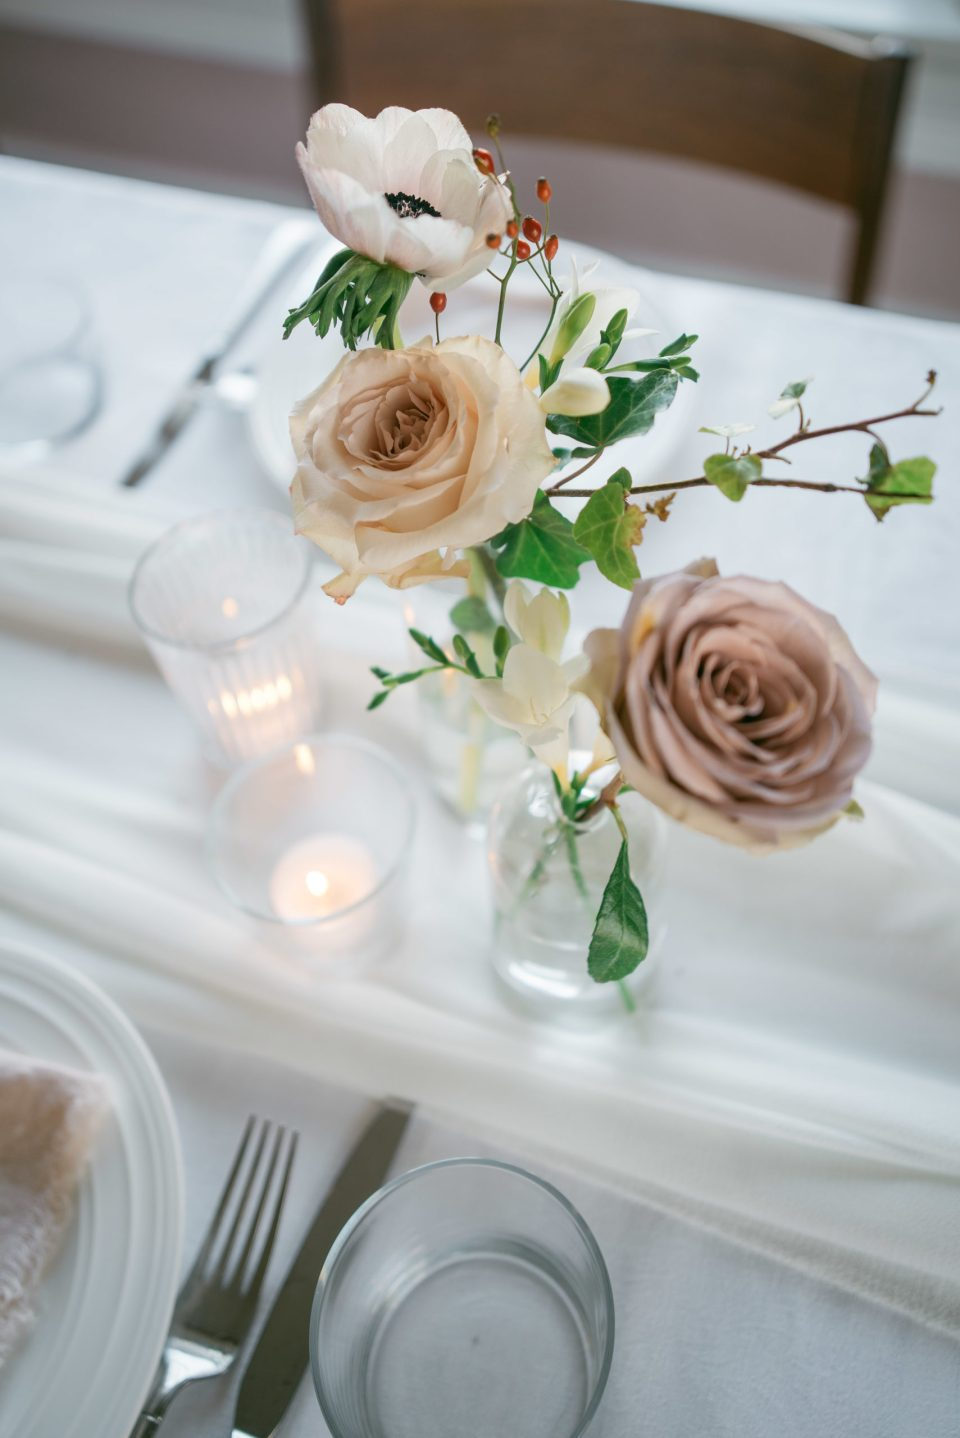 Centrepieces for Rectangular Tables | Wedding Centrepieces | Bud Vases